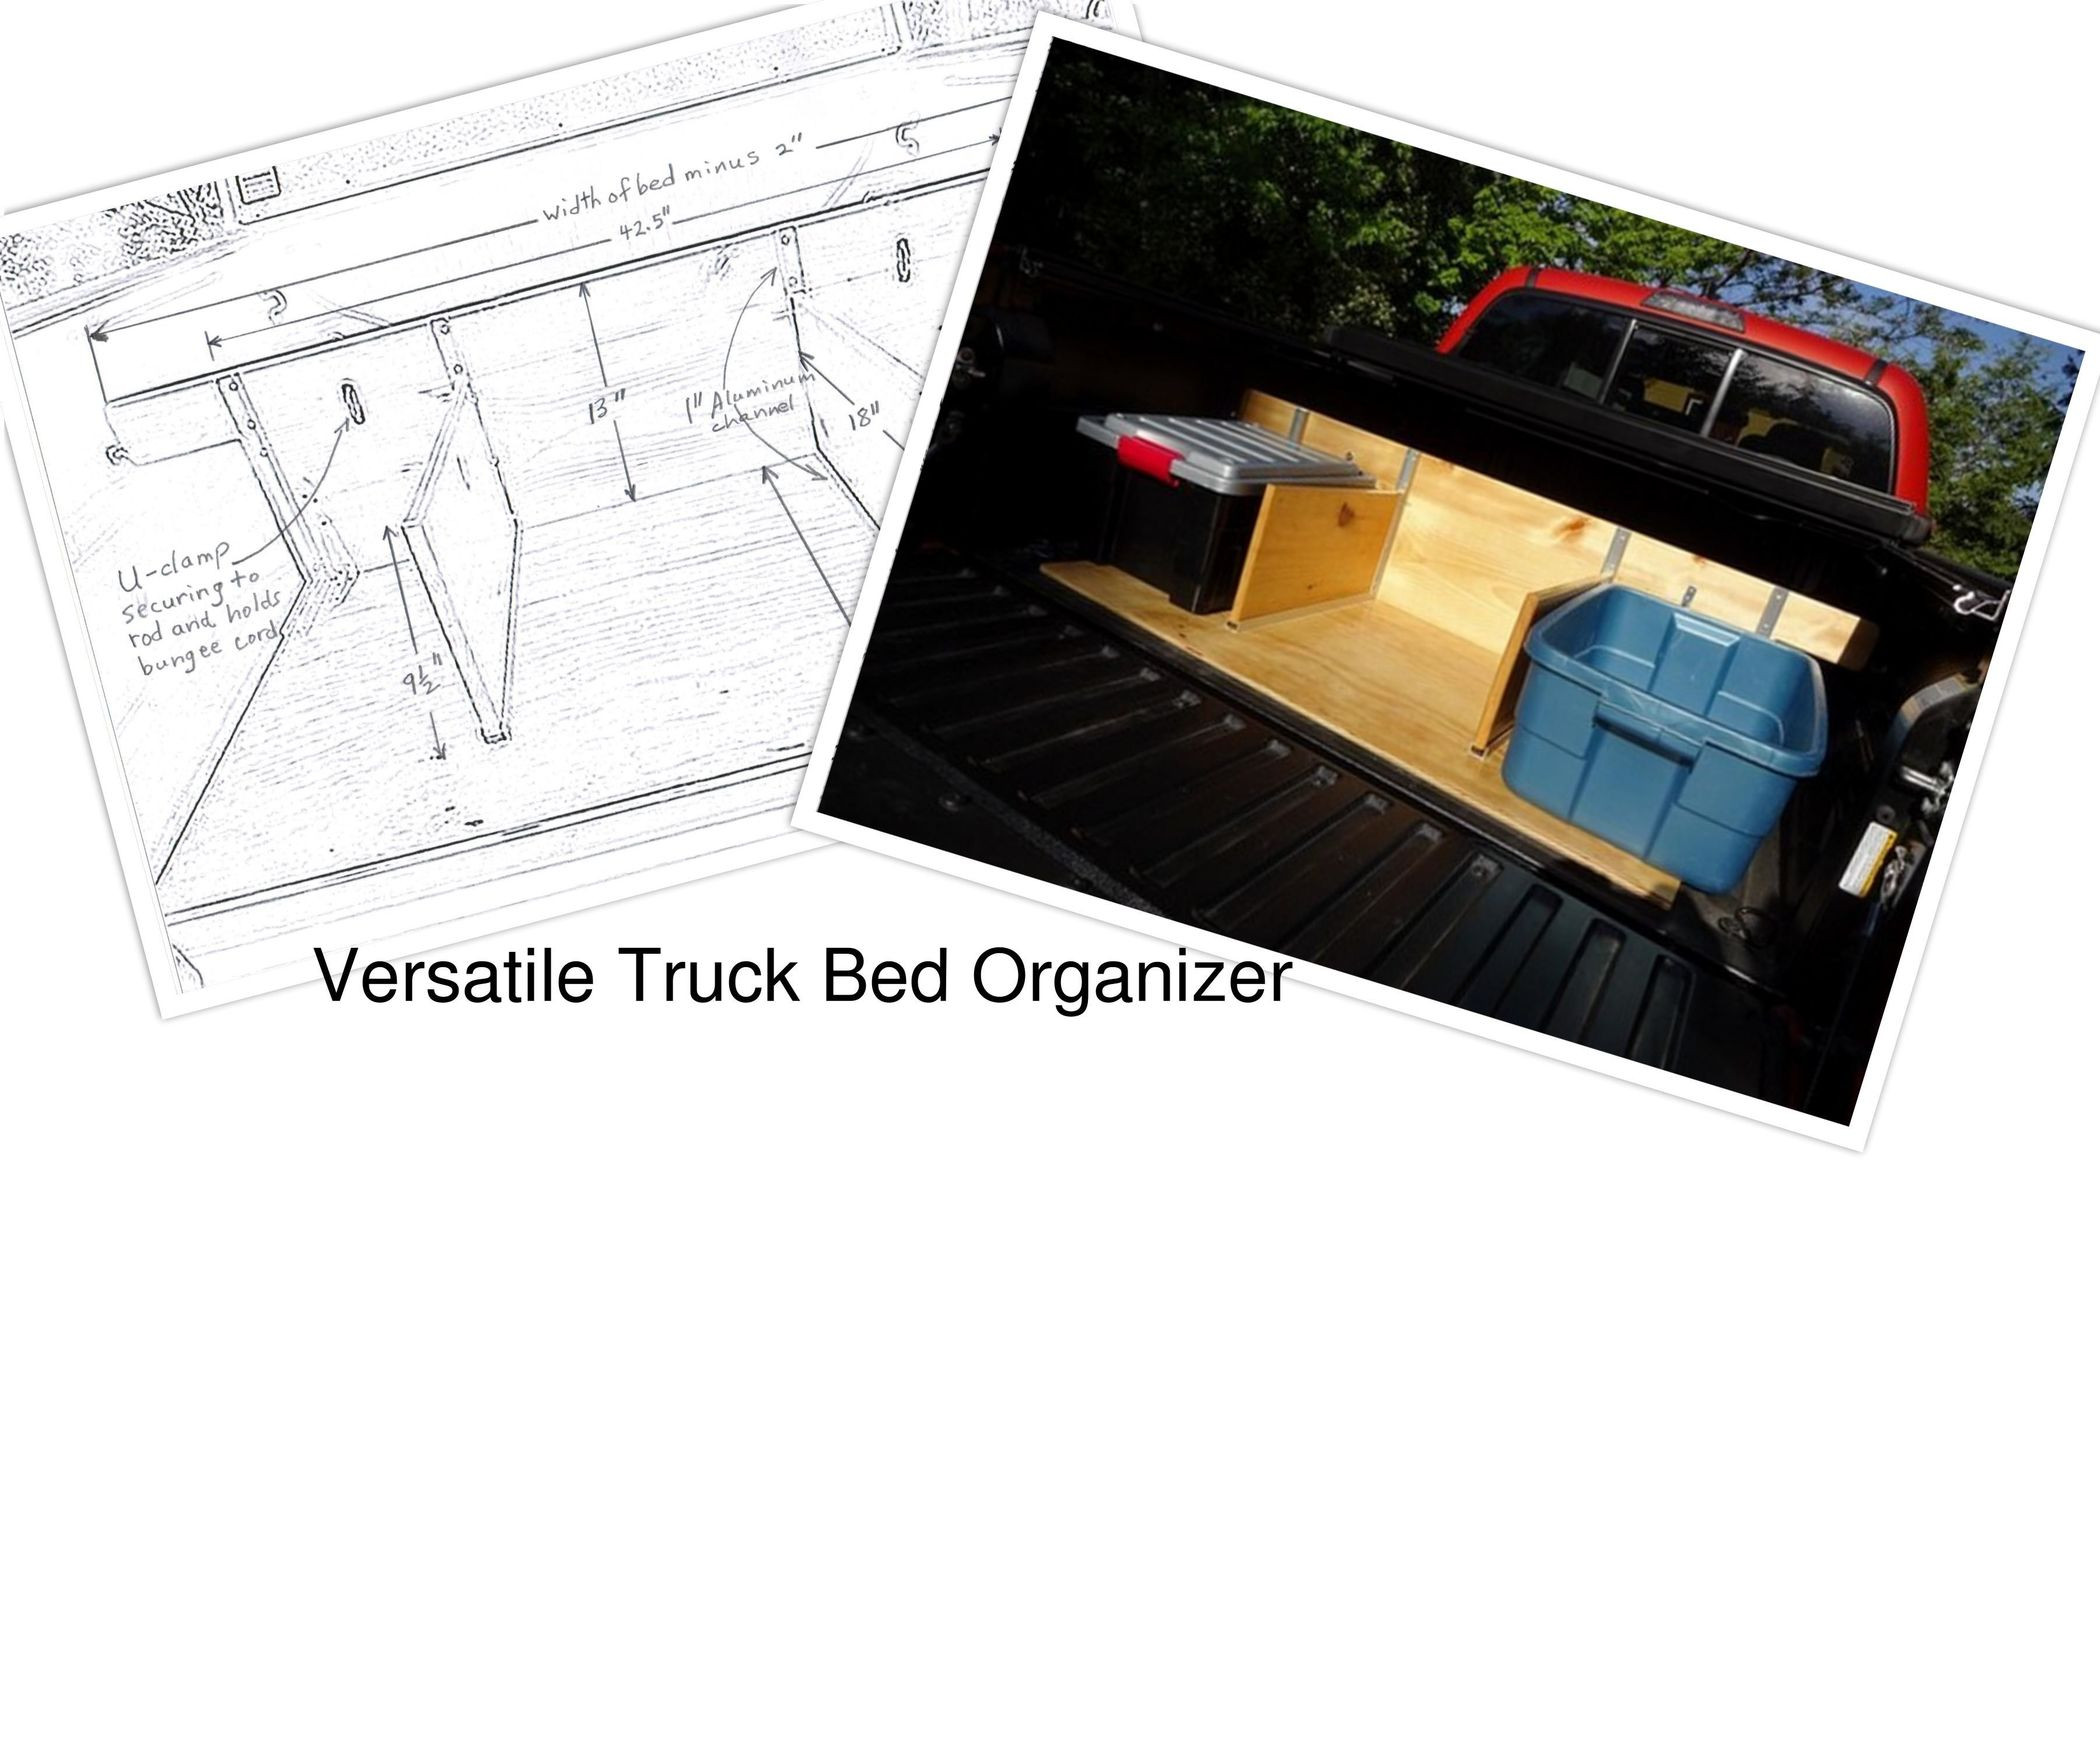 Best ideas about Truck Bed Organizer DIY . Save or Pin How to Build a Truck Bed Organizer 8 Steps with Now.